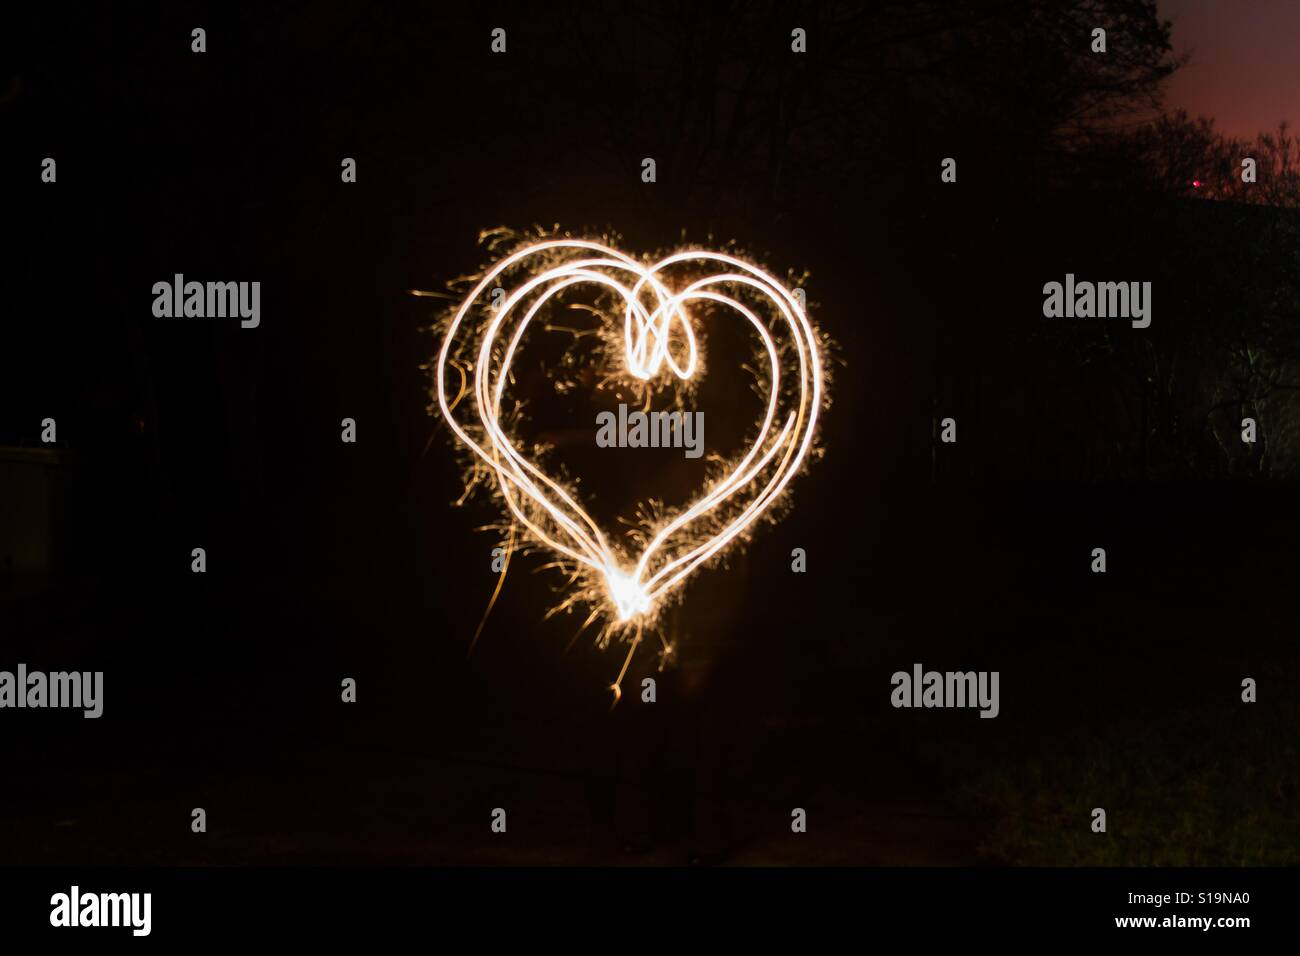 Love in the darkness - Stock Image